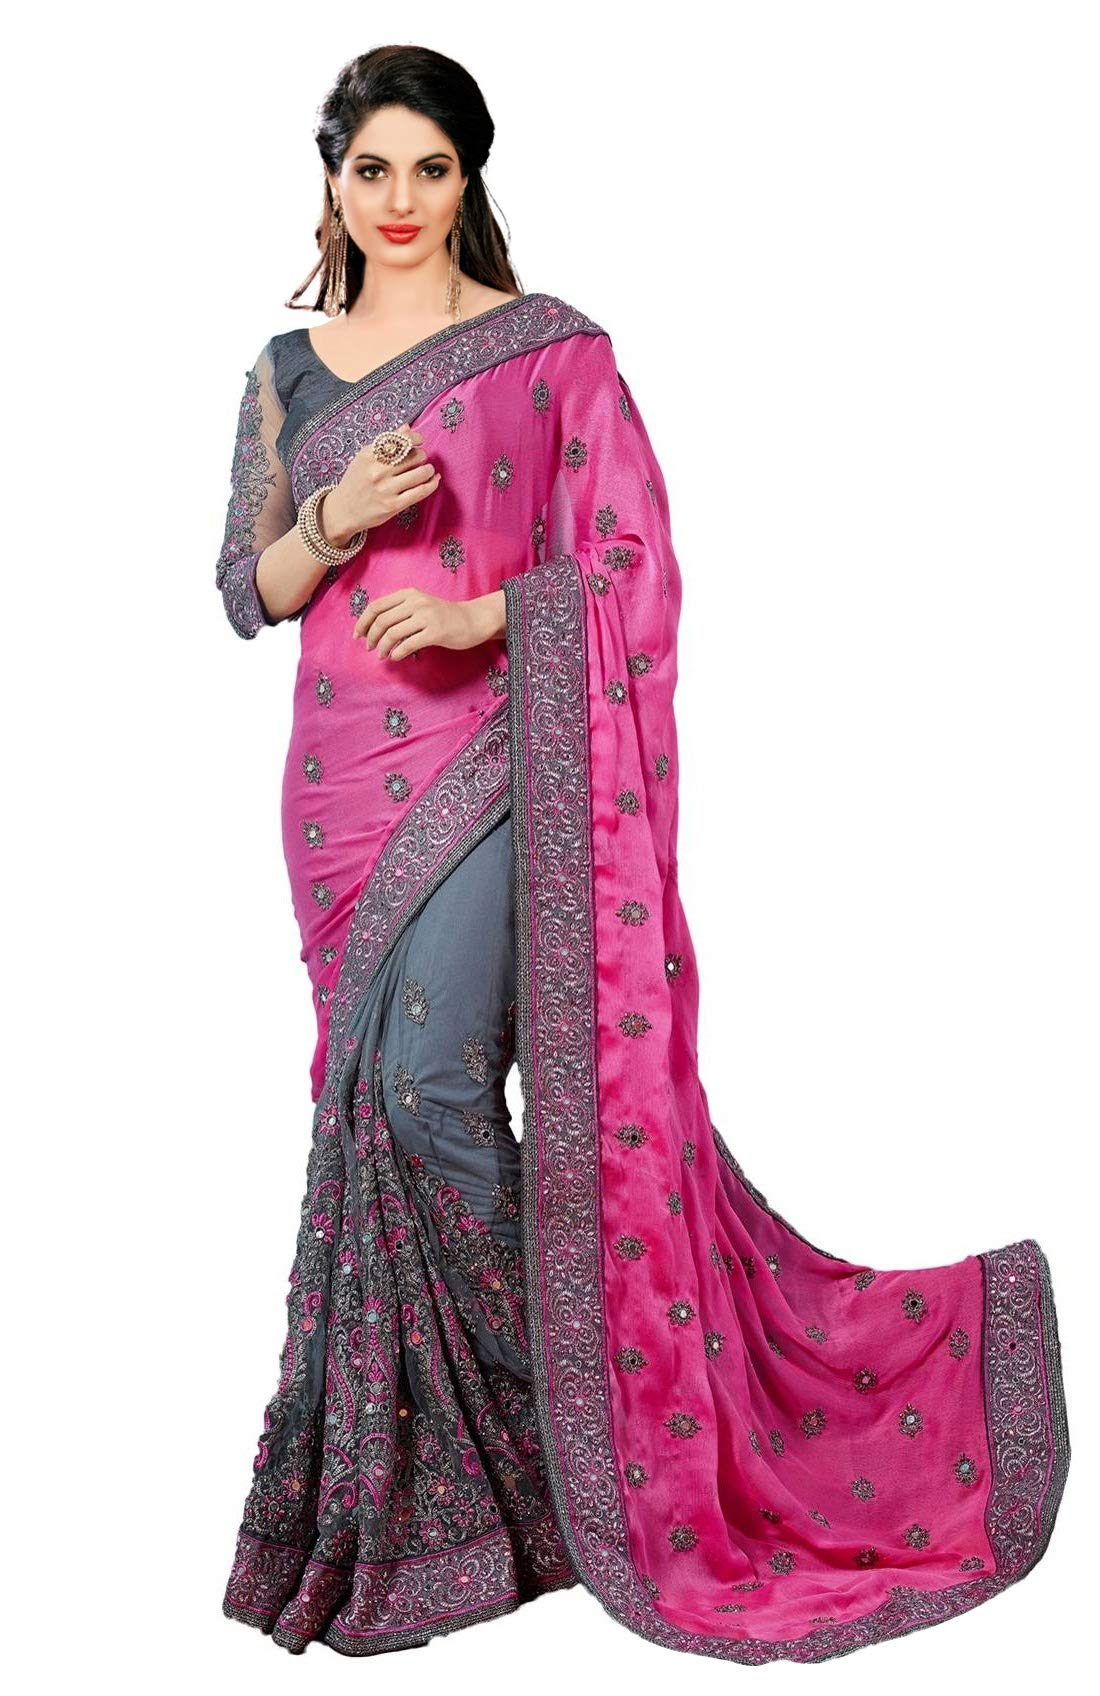 Nivah Fashion Satin & Net Embroidery Half & Half Saree with Blouse Piece(K608) product image